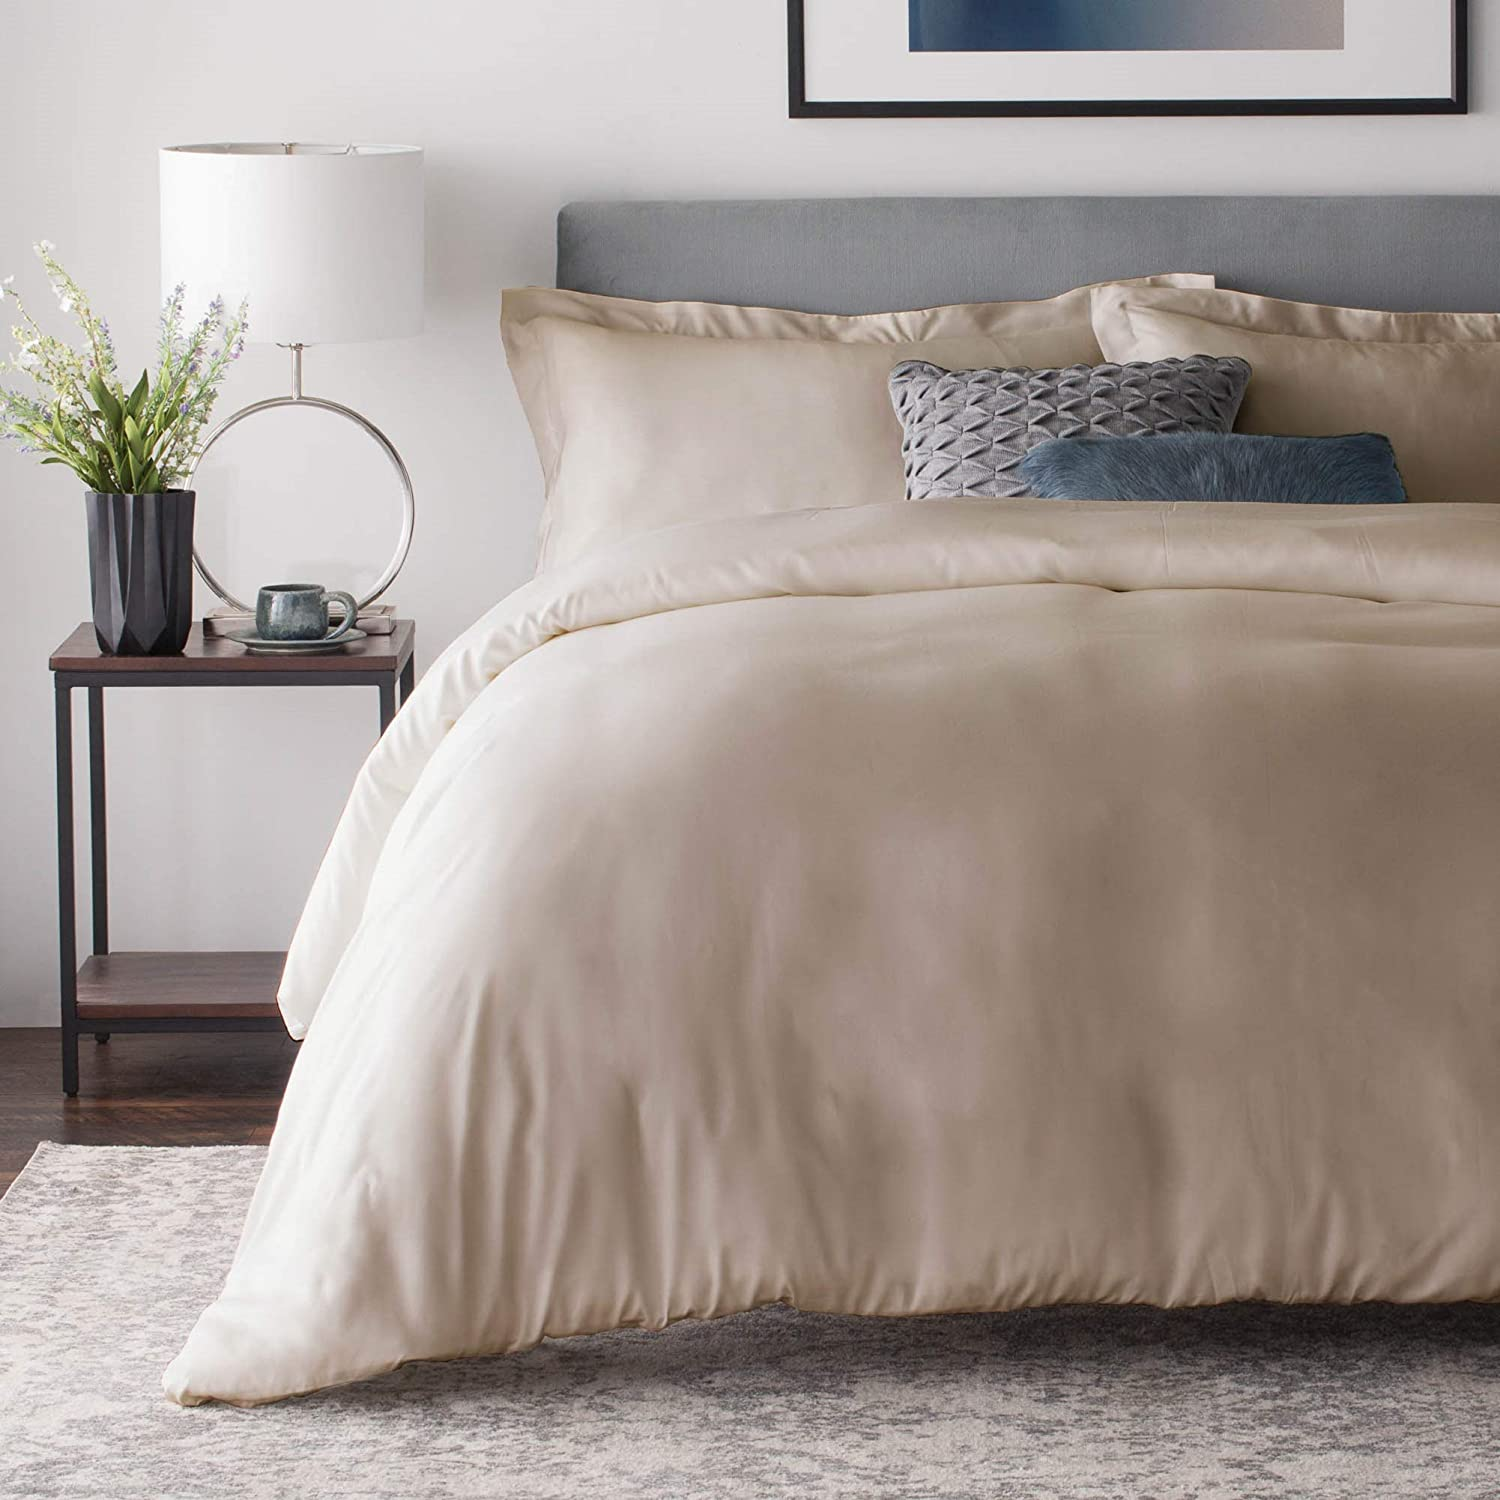 Amazon Com Malouf Ma25qqdrbd Rayon From Bamboo Set Best Fitting Duvet Cover 8 Corner And Side Loops Queen Driftwood Home Kitchen